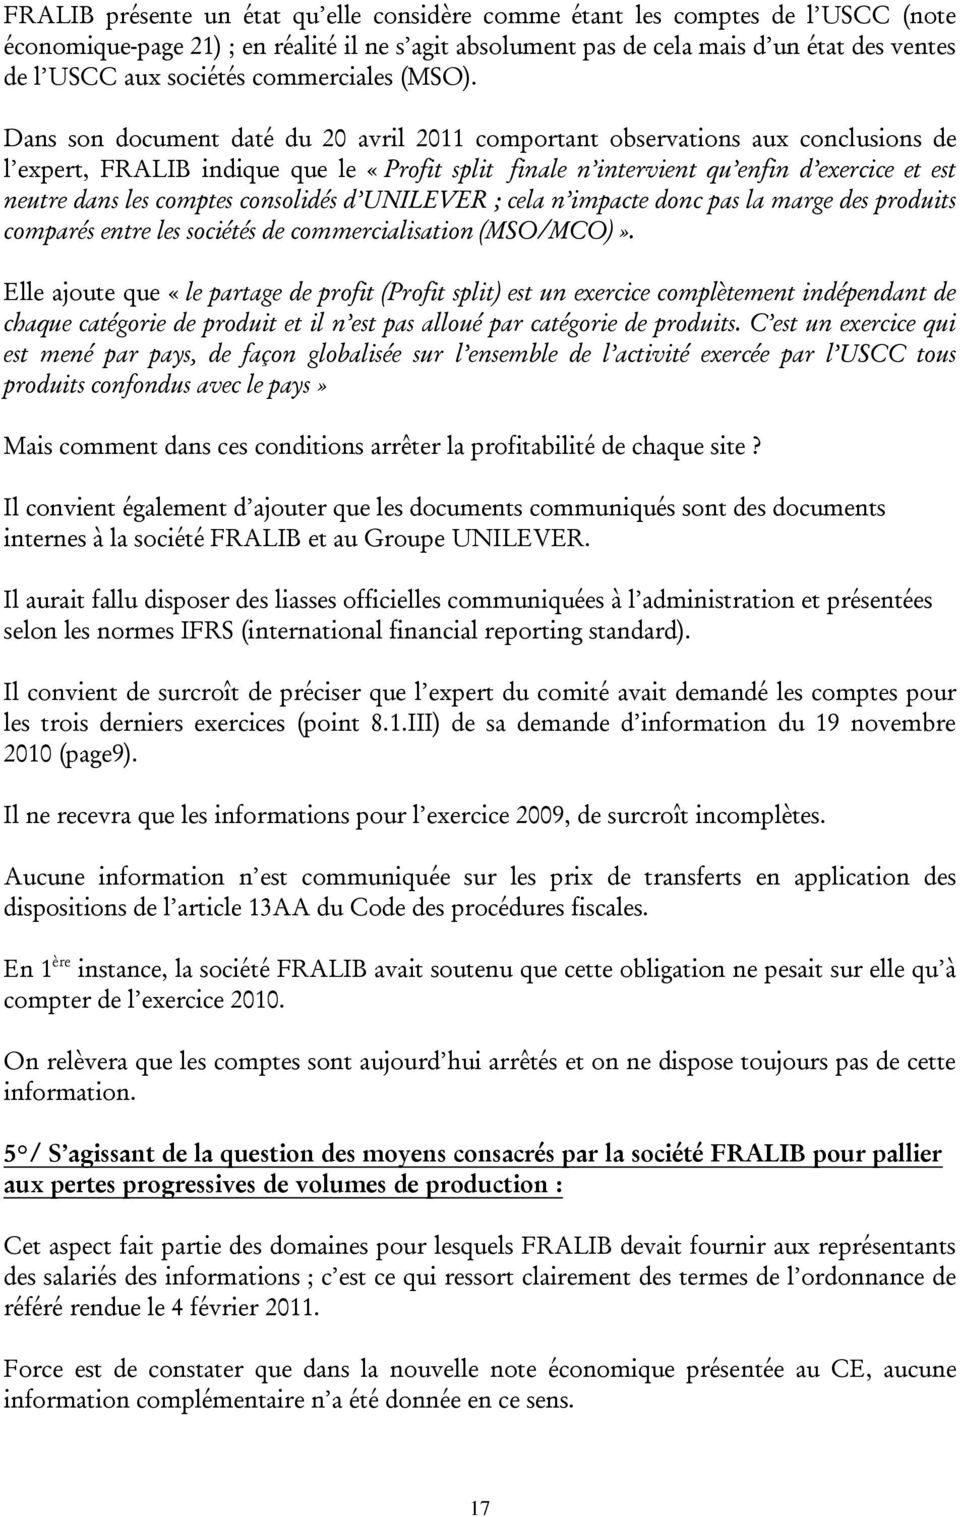 Dans son document daté du 20 avril 2011 comportant observations aux conclusions de l expert, FRALIB indique que le «Profit split finale n intervient qu enfin d exercice et est neutre dans les comptes